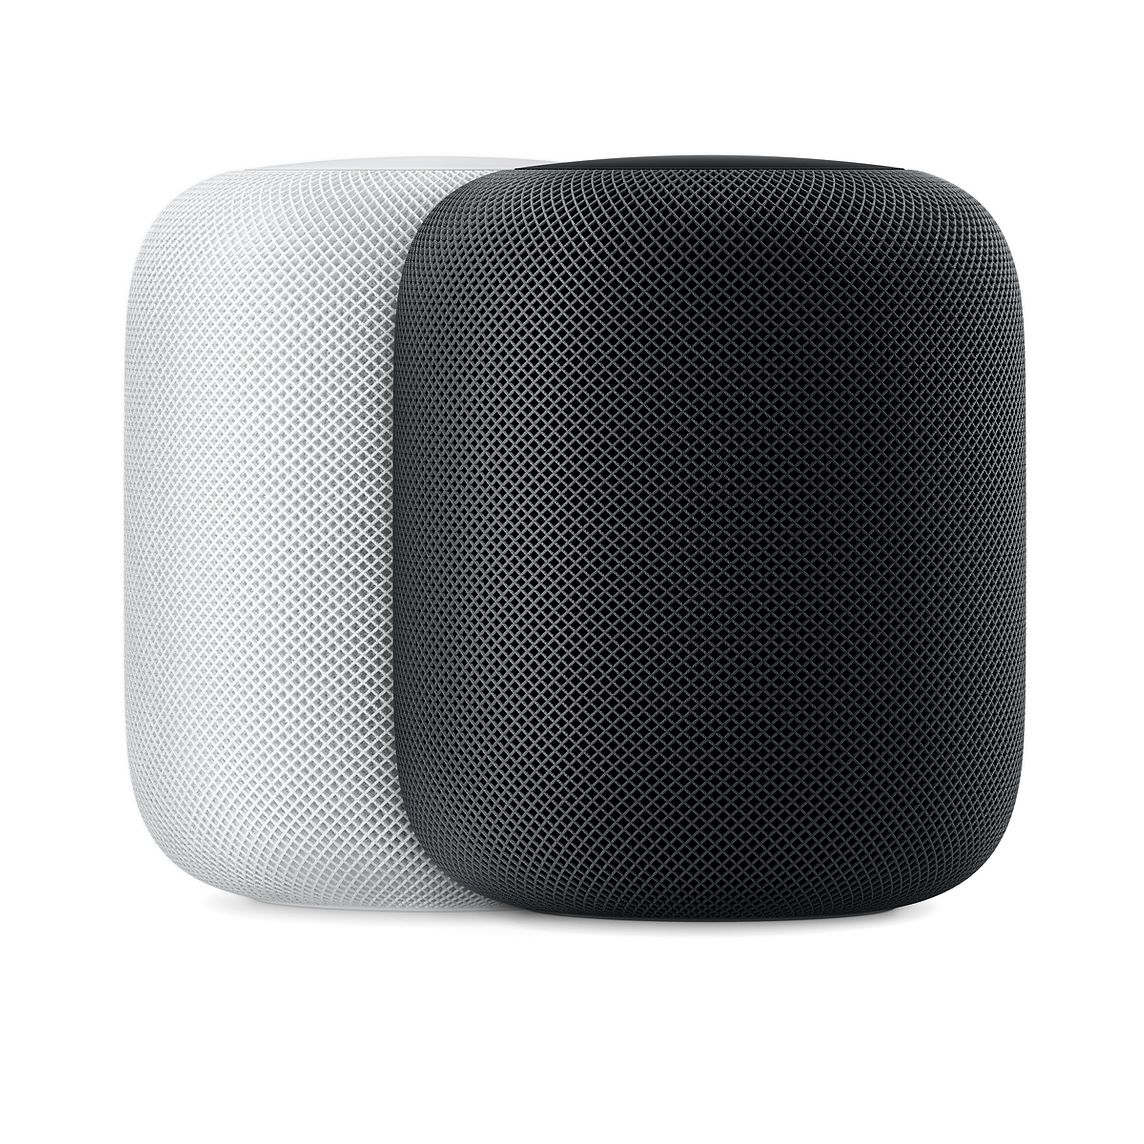 Sams Club sale event: Apple HomePods for $70 off MSRP, only $229